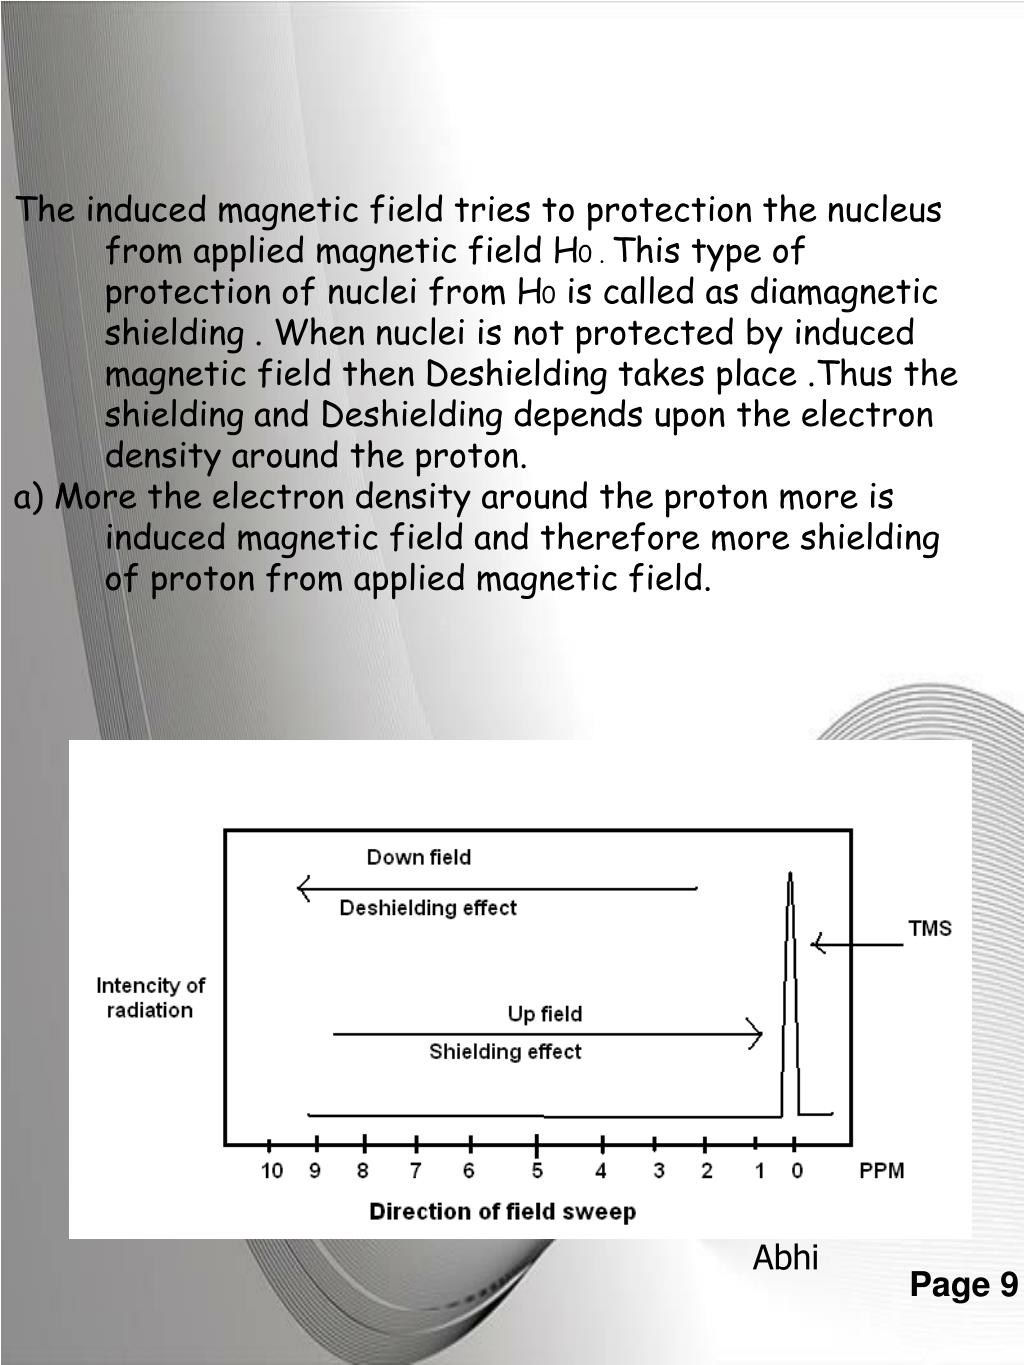 The induced magnetic field tries to protection the nucleus from applied magnetic field H